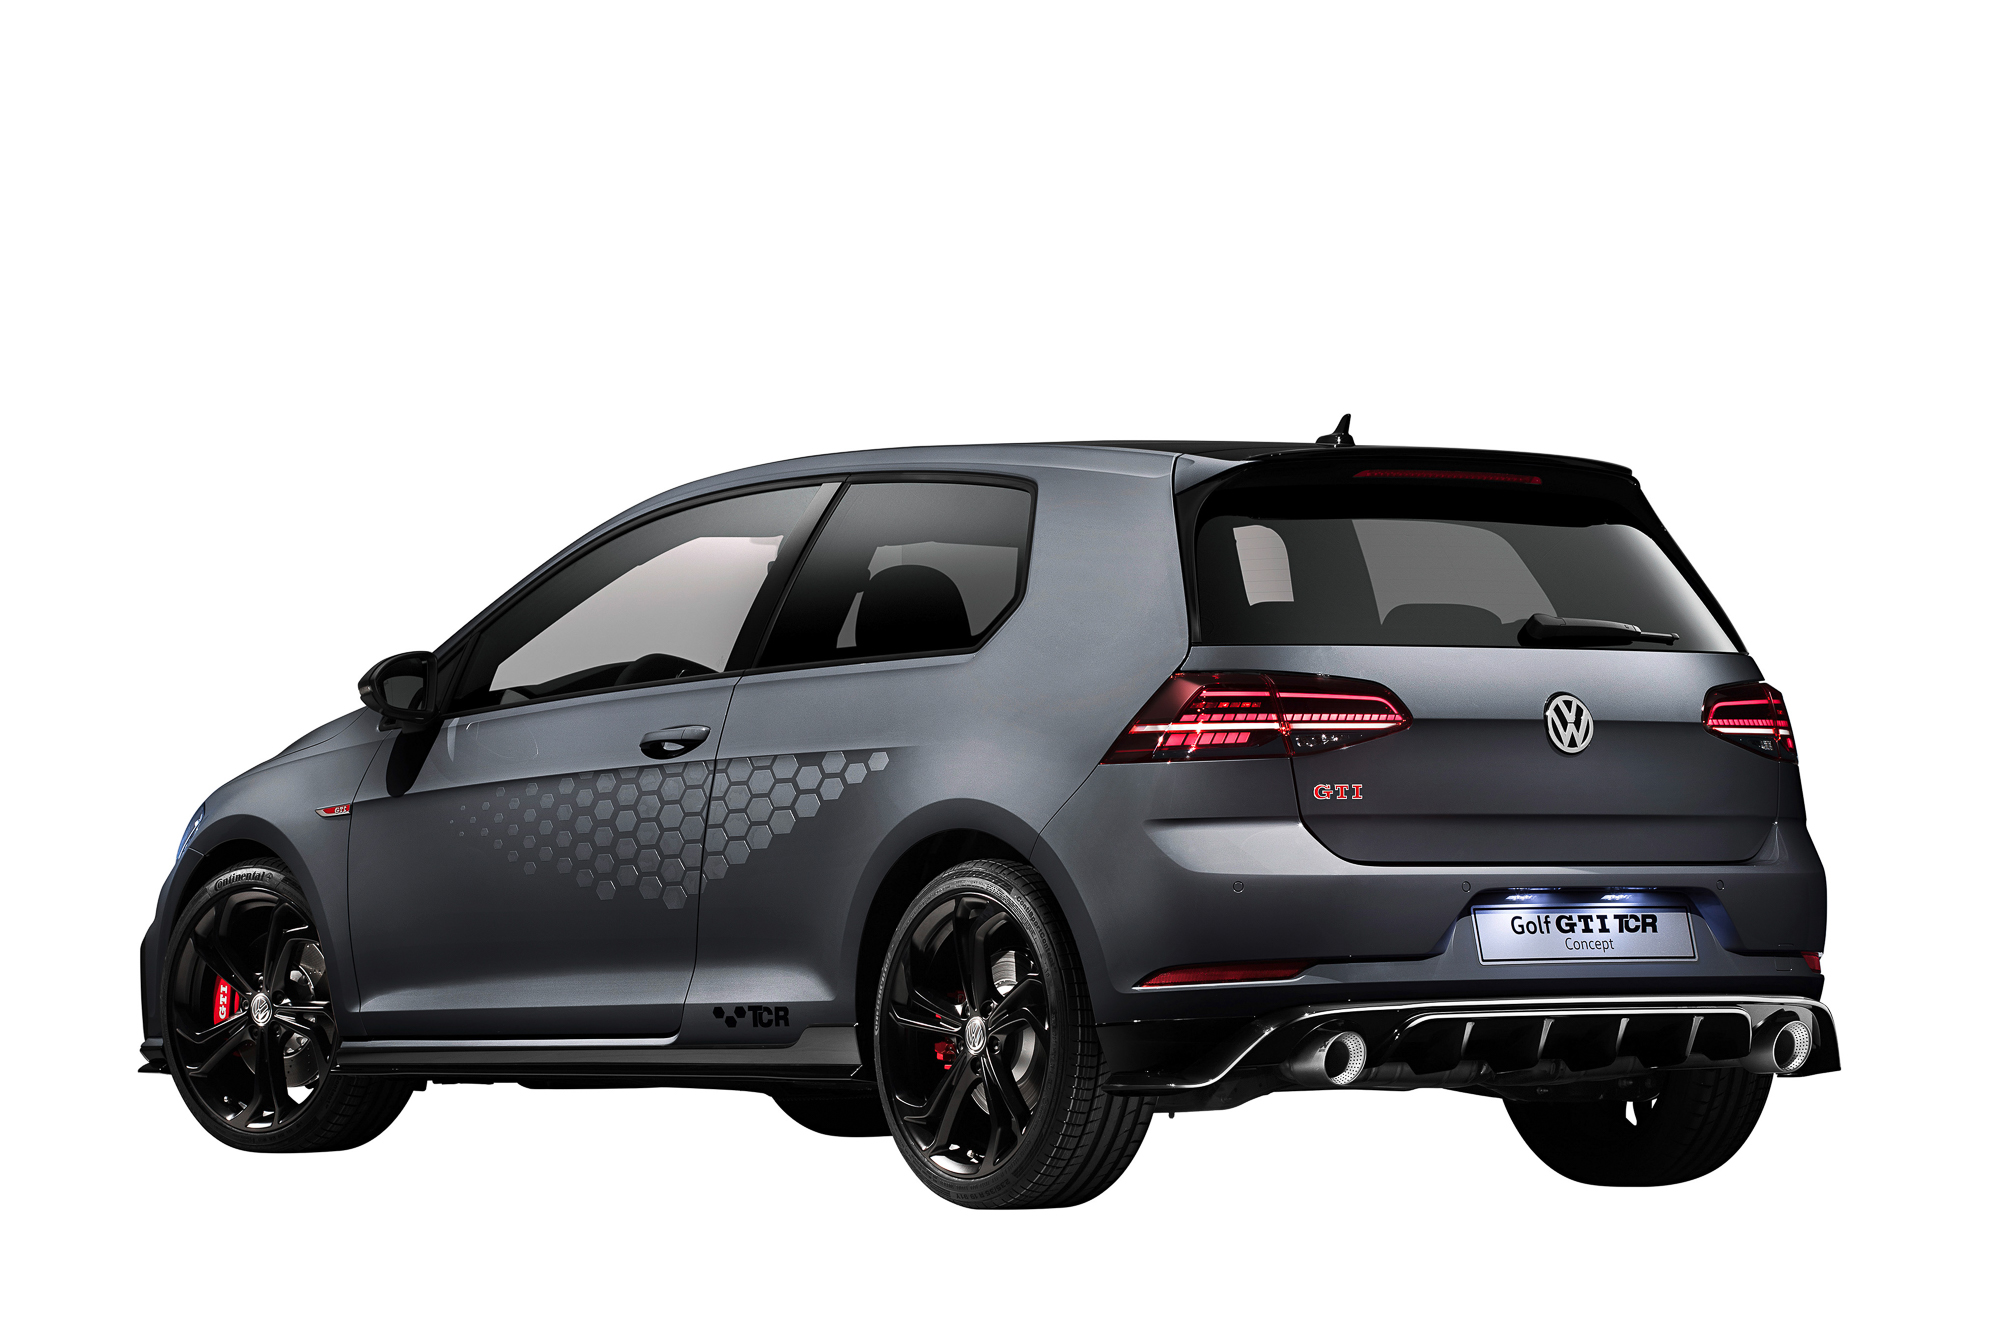 vw golf gti tcr der schnellste gti ab werk. Black Bedroom Furniture Sets. Home Design Ideas